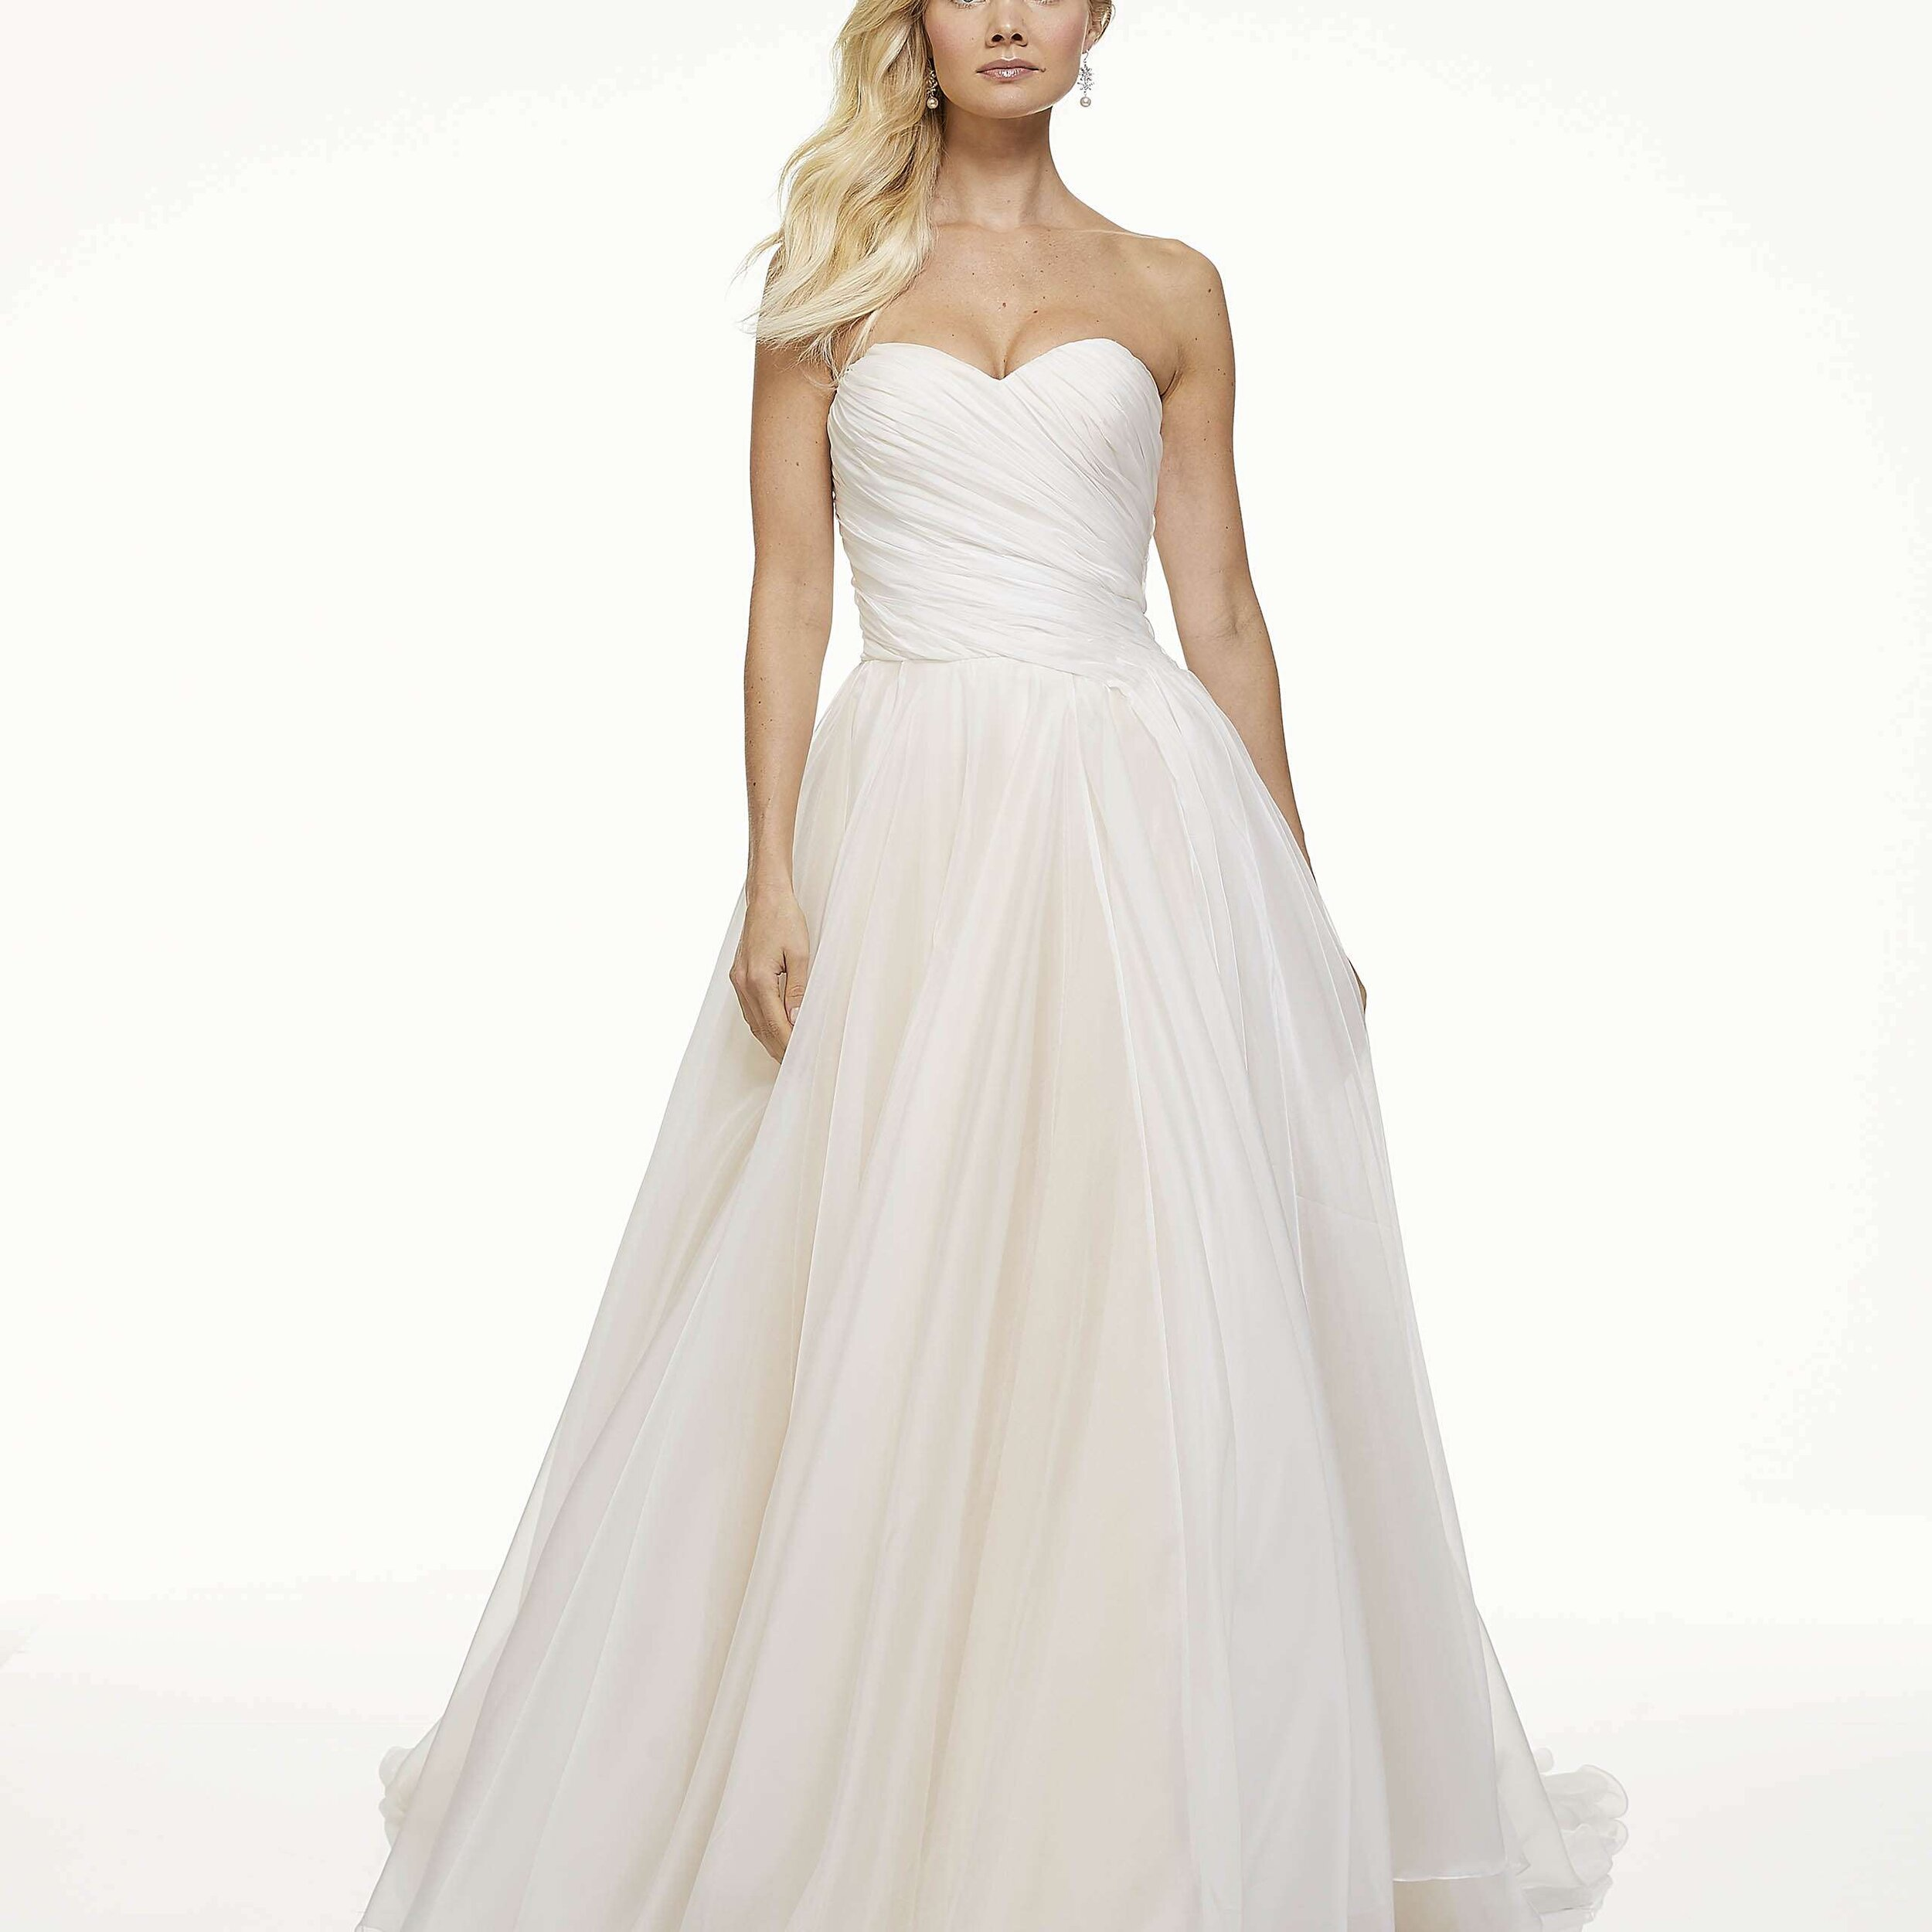 Mark Zunino - Mark is recognized as a leading fashion designer for Hollywood. He is internationally known for his ability to accentuate a women's best features. His designs are unique, feminine while still embodying a modern elegance for women of all shapes, sizes, and age.